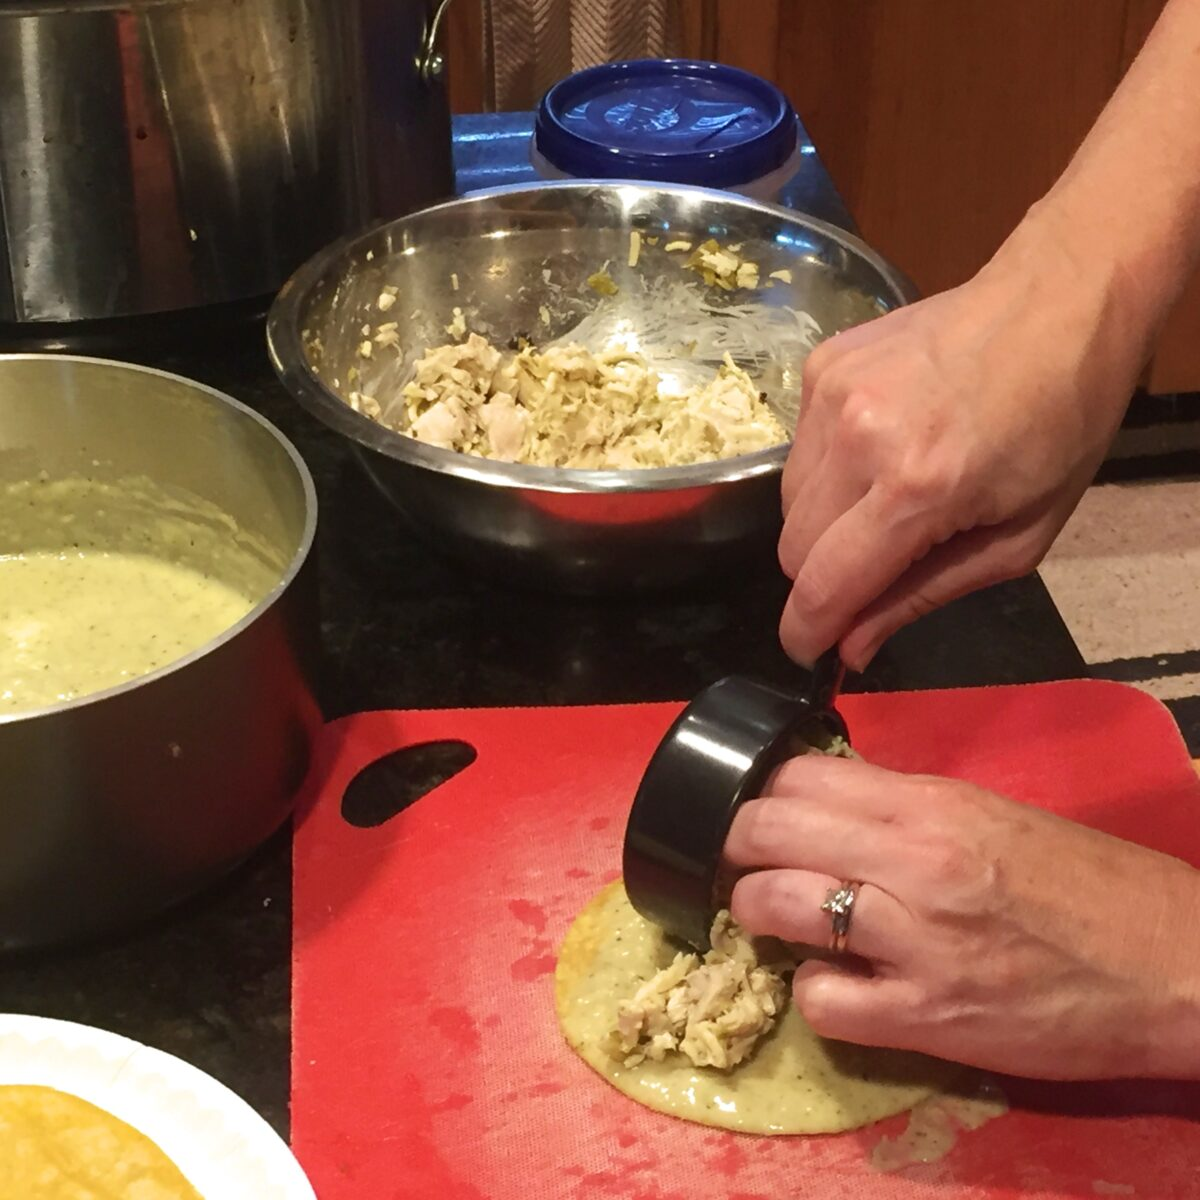 Adding enchilada filling to the sauce tortilla, ready for rolling.